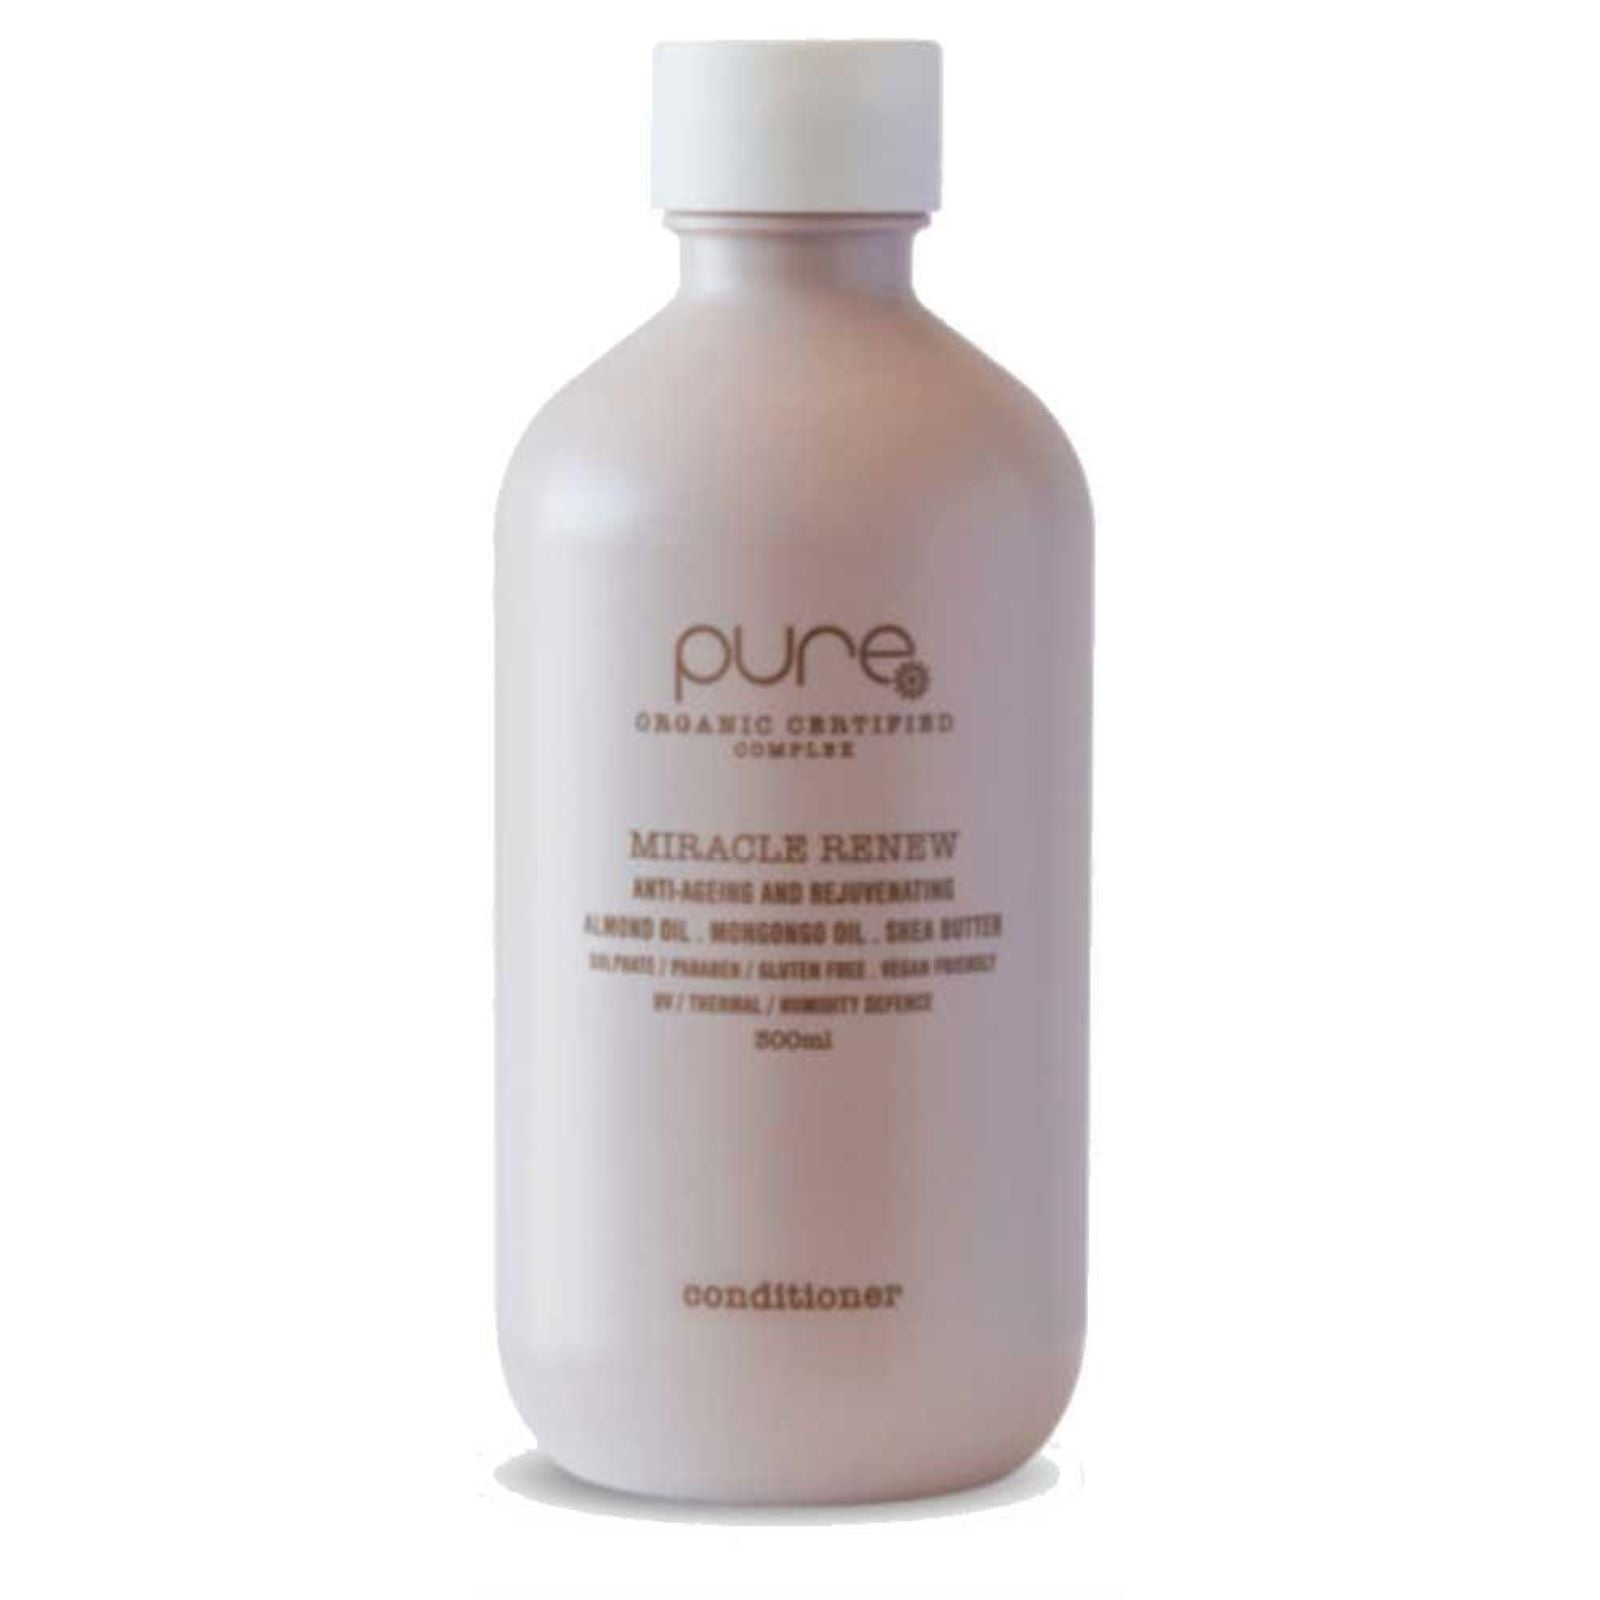 Pure Miracle Renew Conditioner 300ml